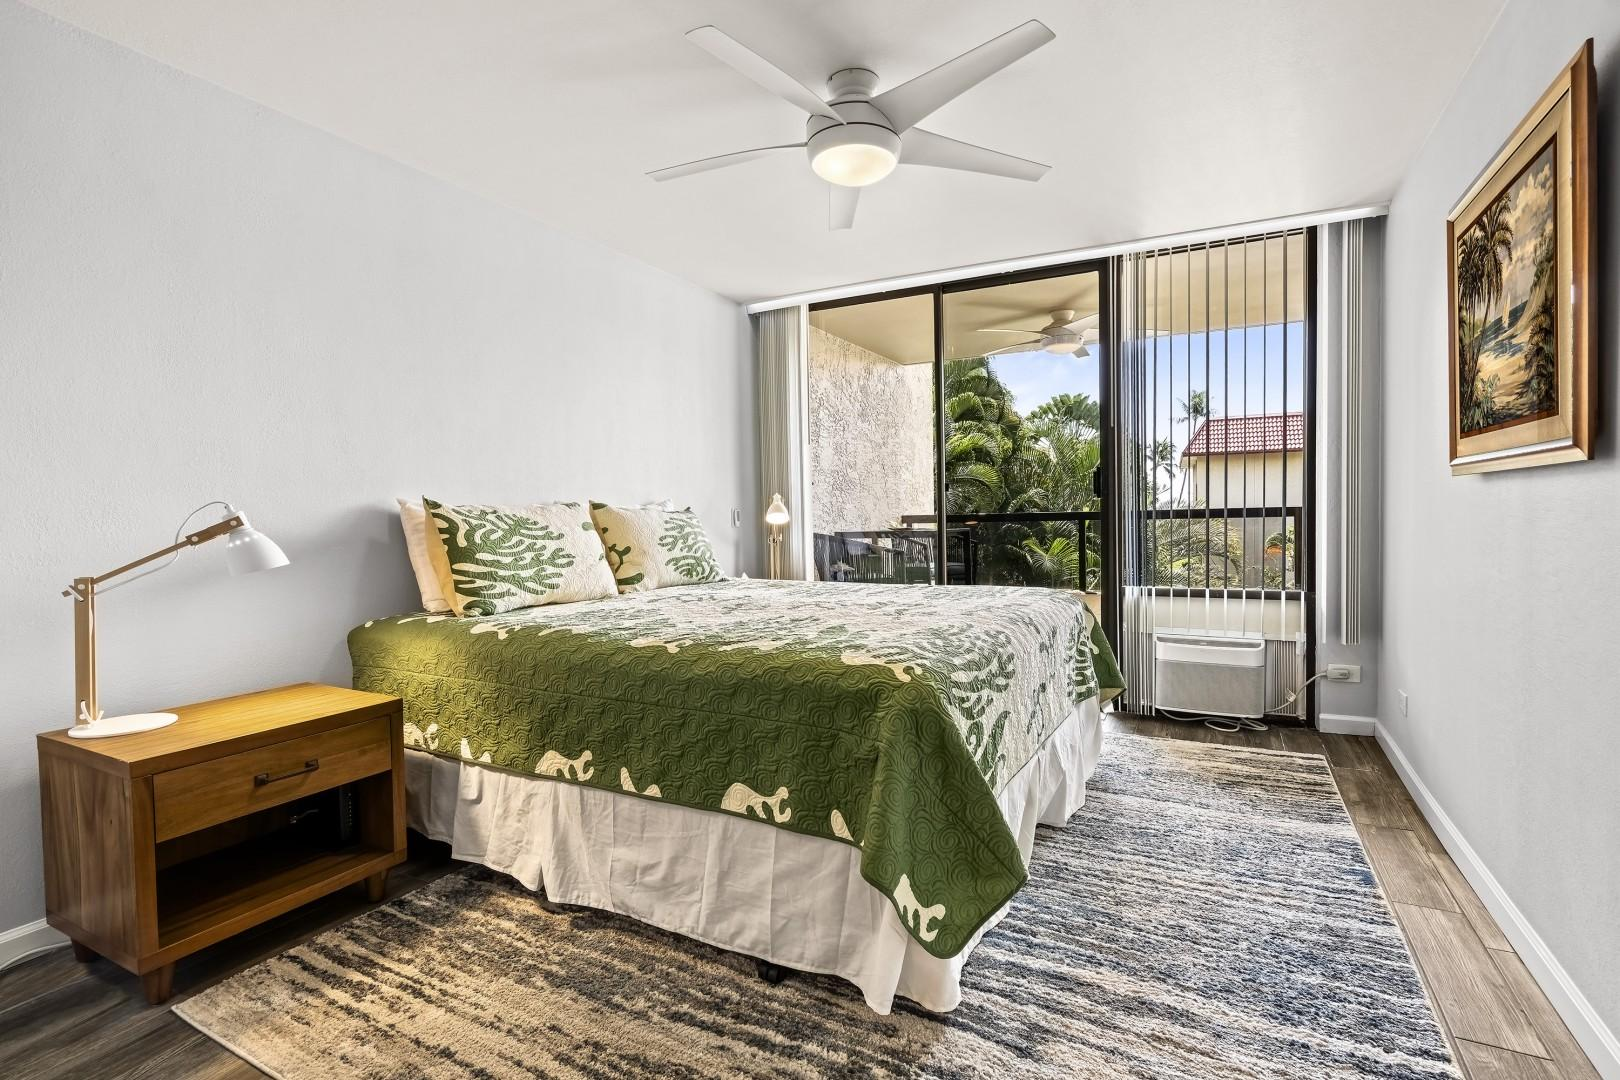 Bedroom features, King bed, A/C, Lanai access, and ensuite